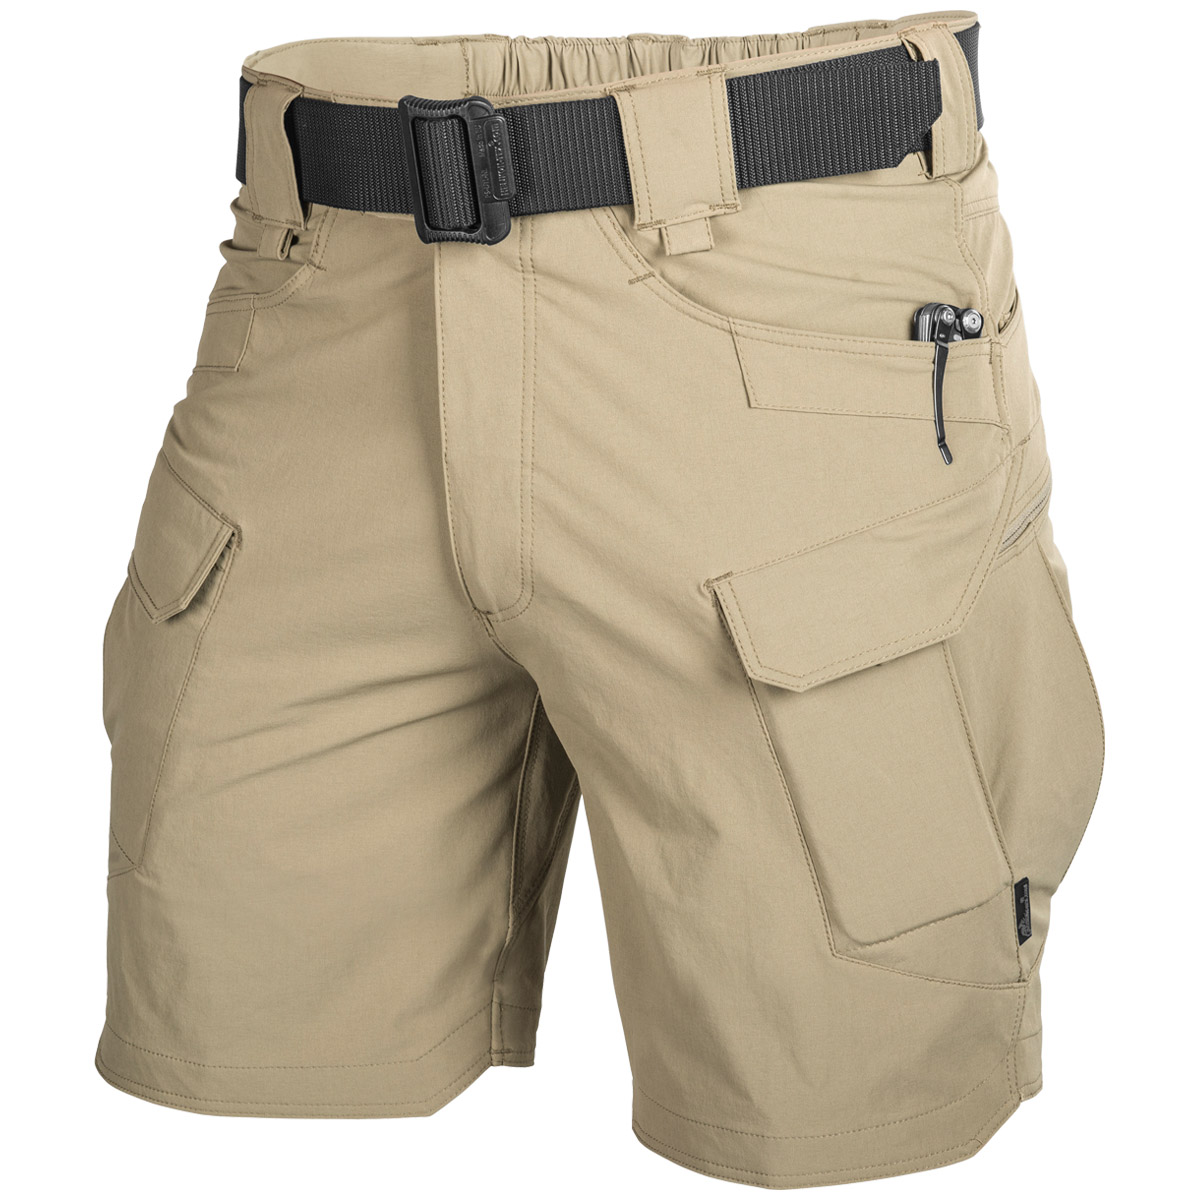 Helikon-Outdoor-Tactical-Mens-Cargo-Shorts-Security-Patrol-